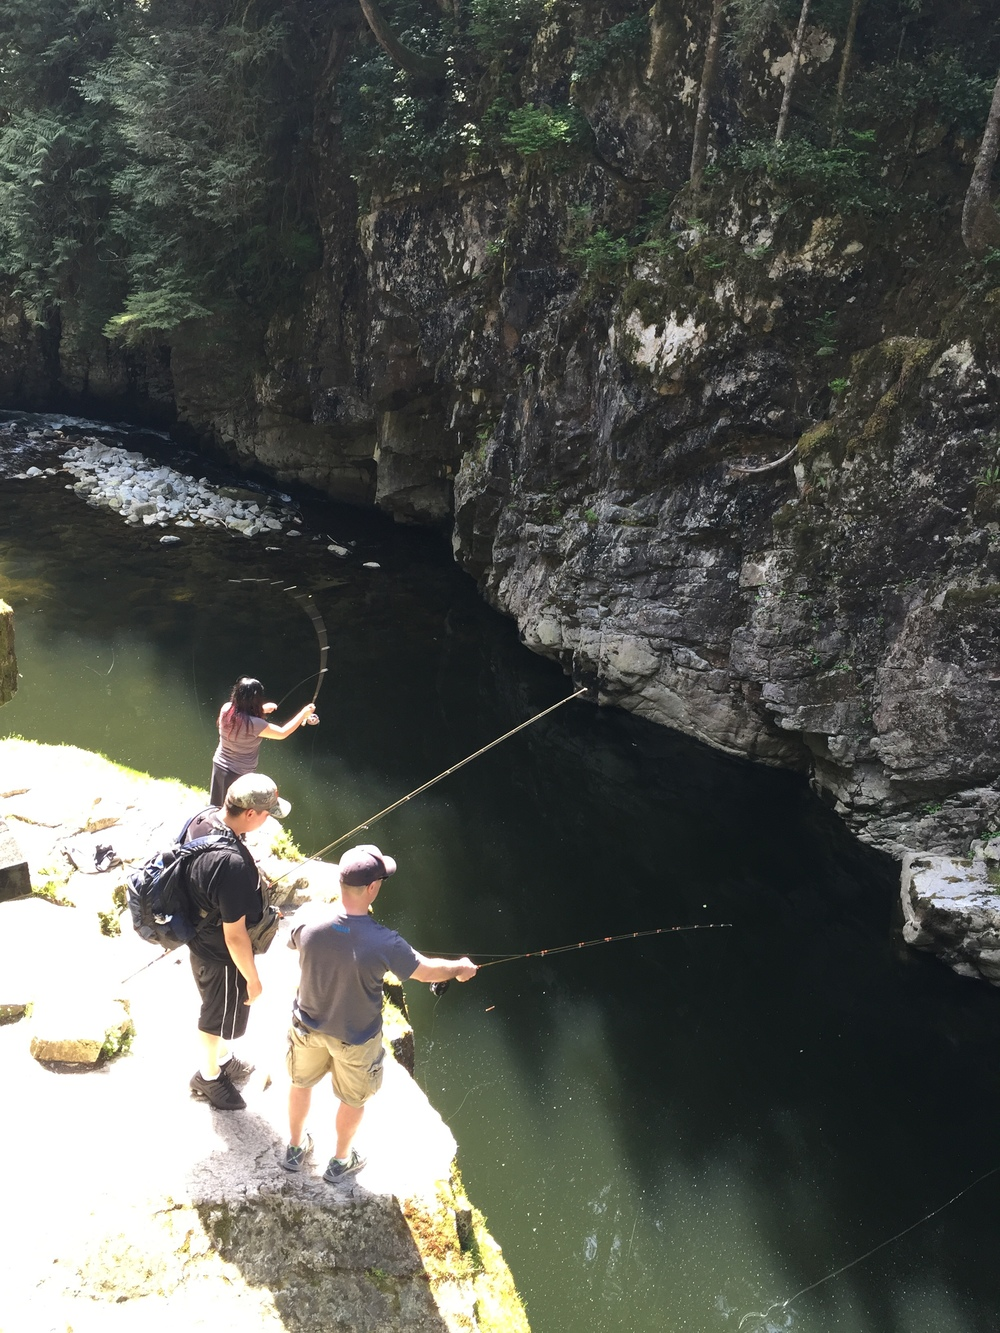 A few guys going some fly fishing. We did spot one salmon swimming around nearby but the time to do it is October and November when they're so plentiful that you could literally catch them with your bare hands on the side of the river!  Photo: The Vancouverite